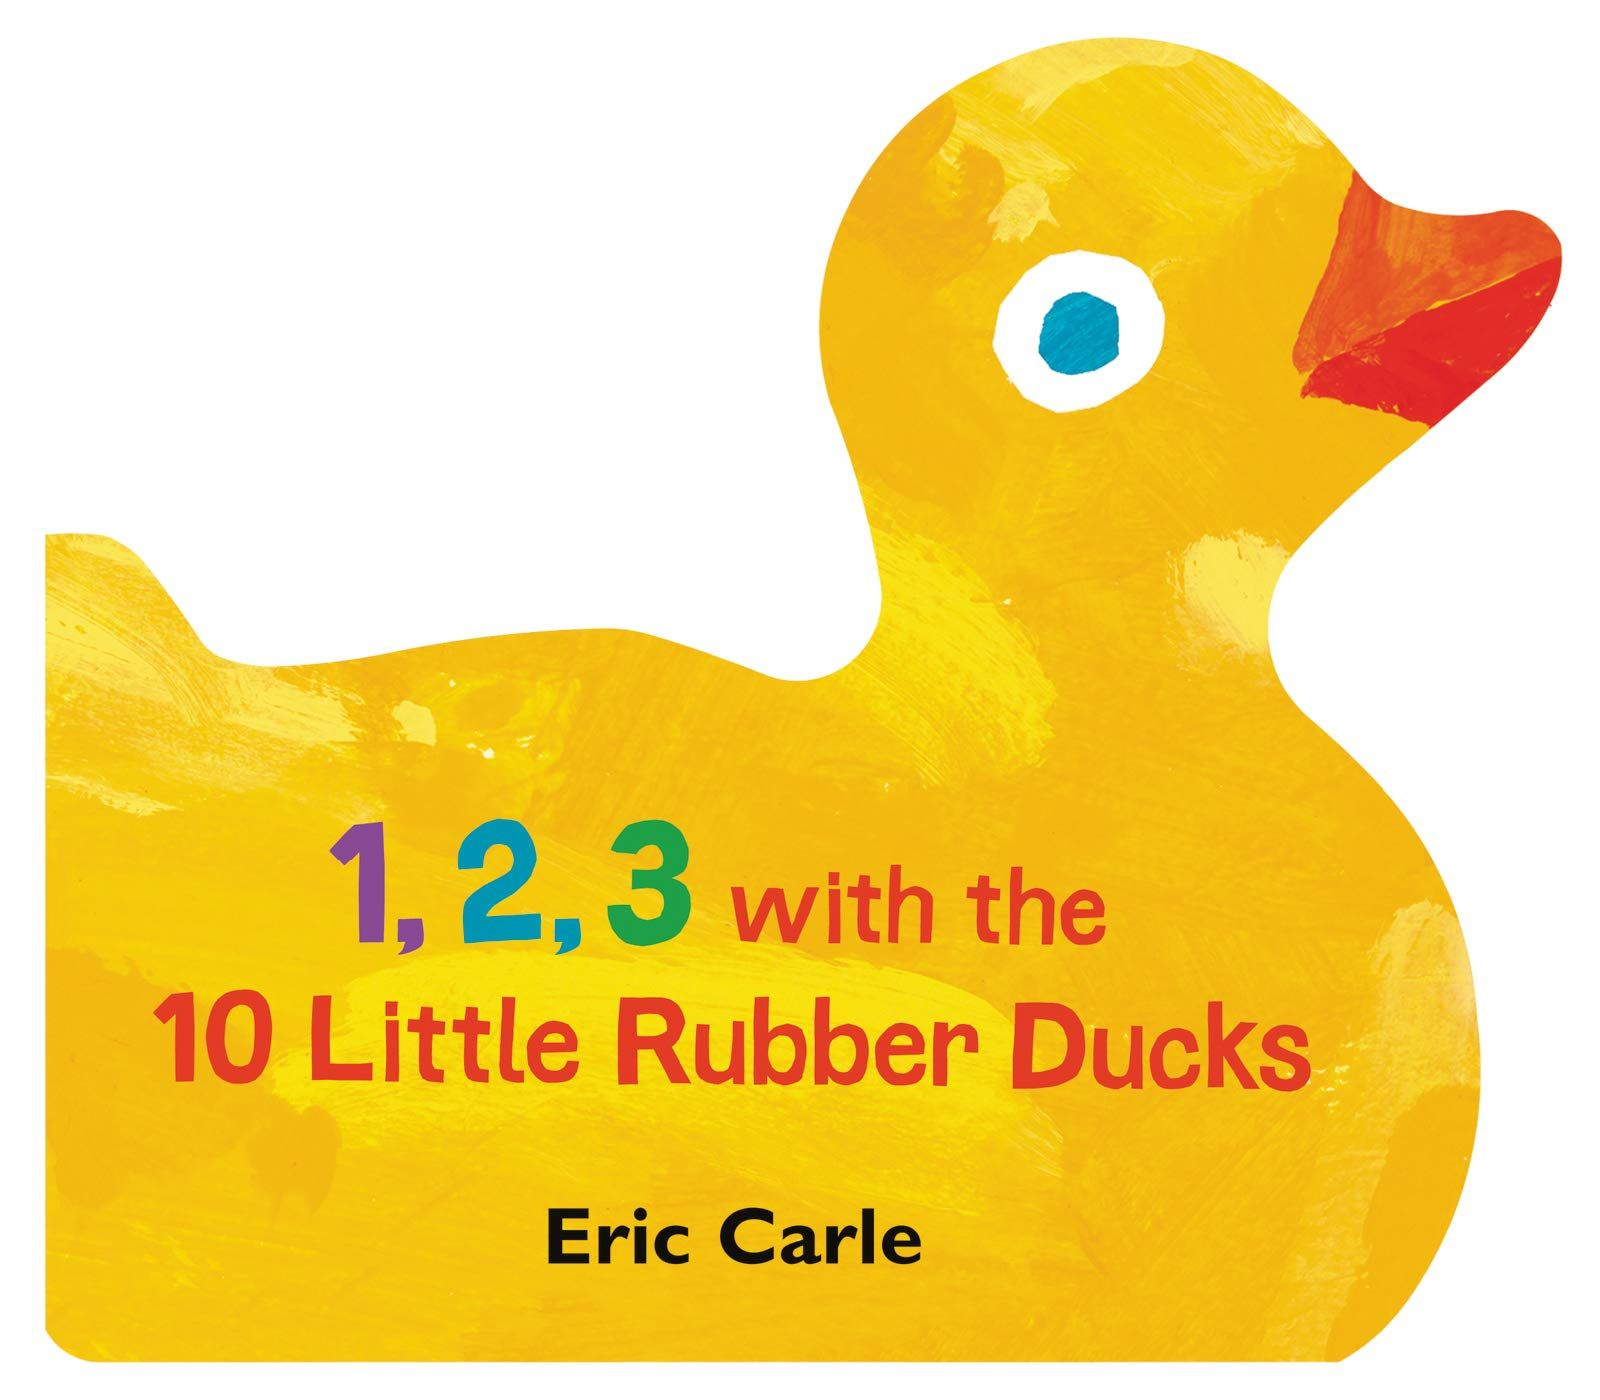 From The World Of Eric Carle Comes An Adorable Duck Shaped Board Book Starring The 10 Little Rubber Ducks Just In Time Rubber Duck Counting Books Board Books